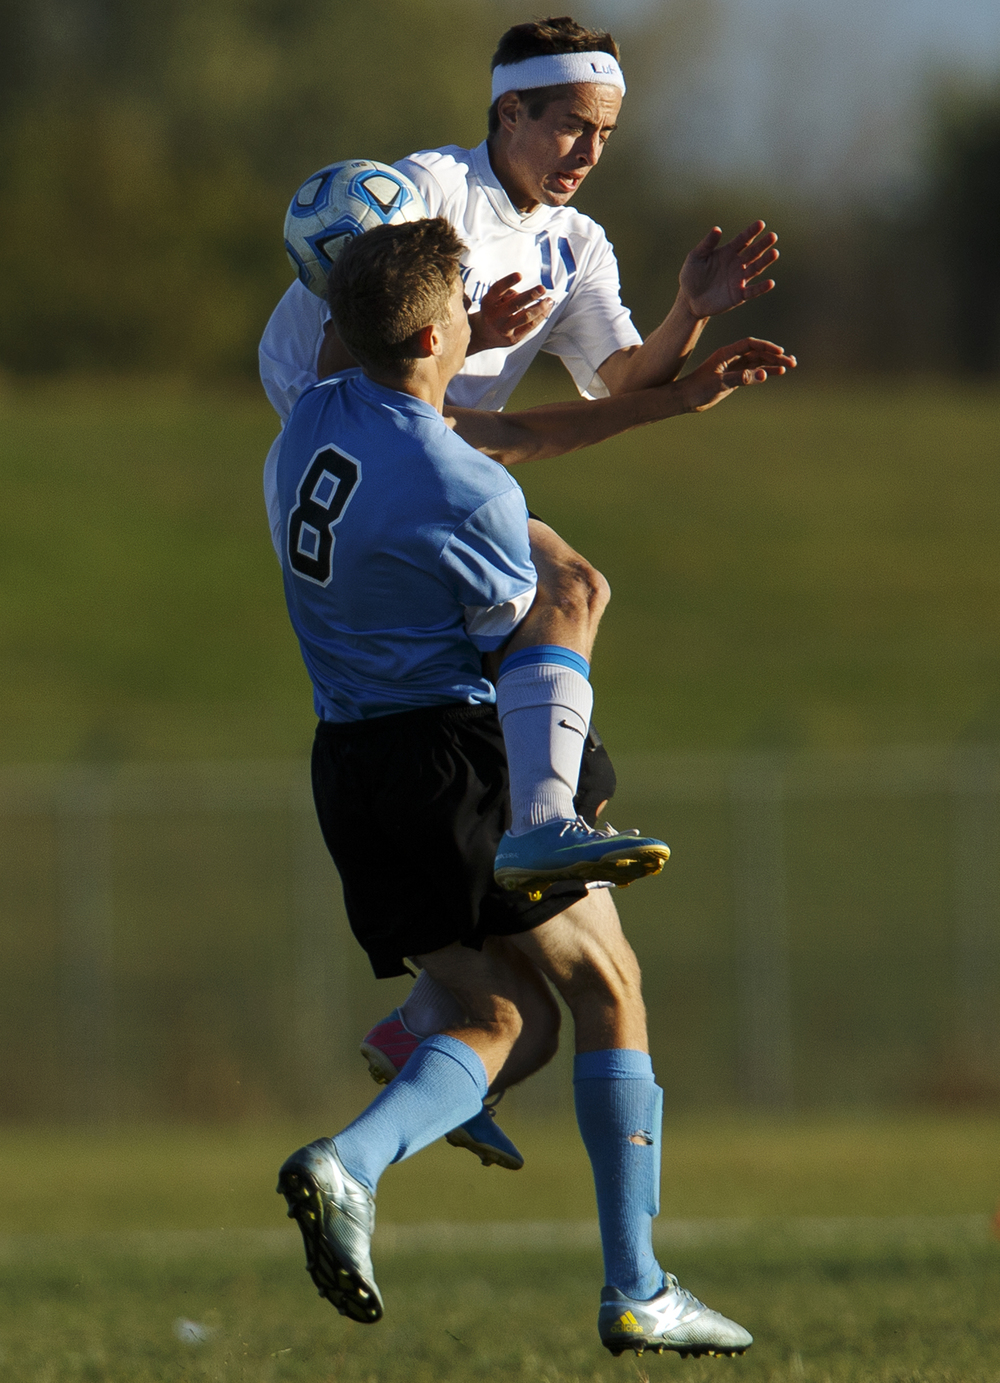 North Mac's Jacob Bounds and Lutheran's Steven Cowles collide during the Class 1A Riverton Regional Tuesday, Oct. 13, 2015. Ted Schurter/The State Journal-Register